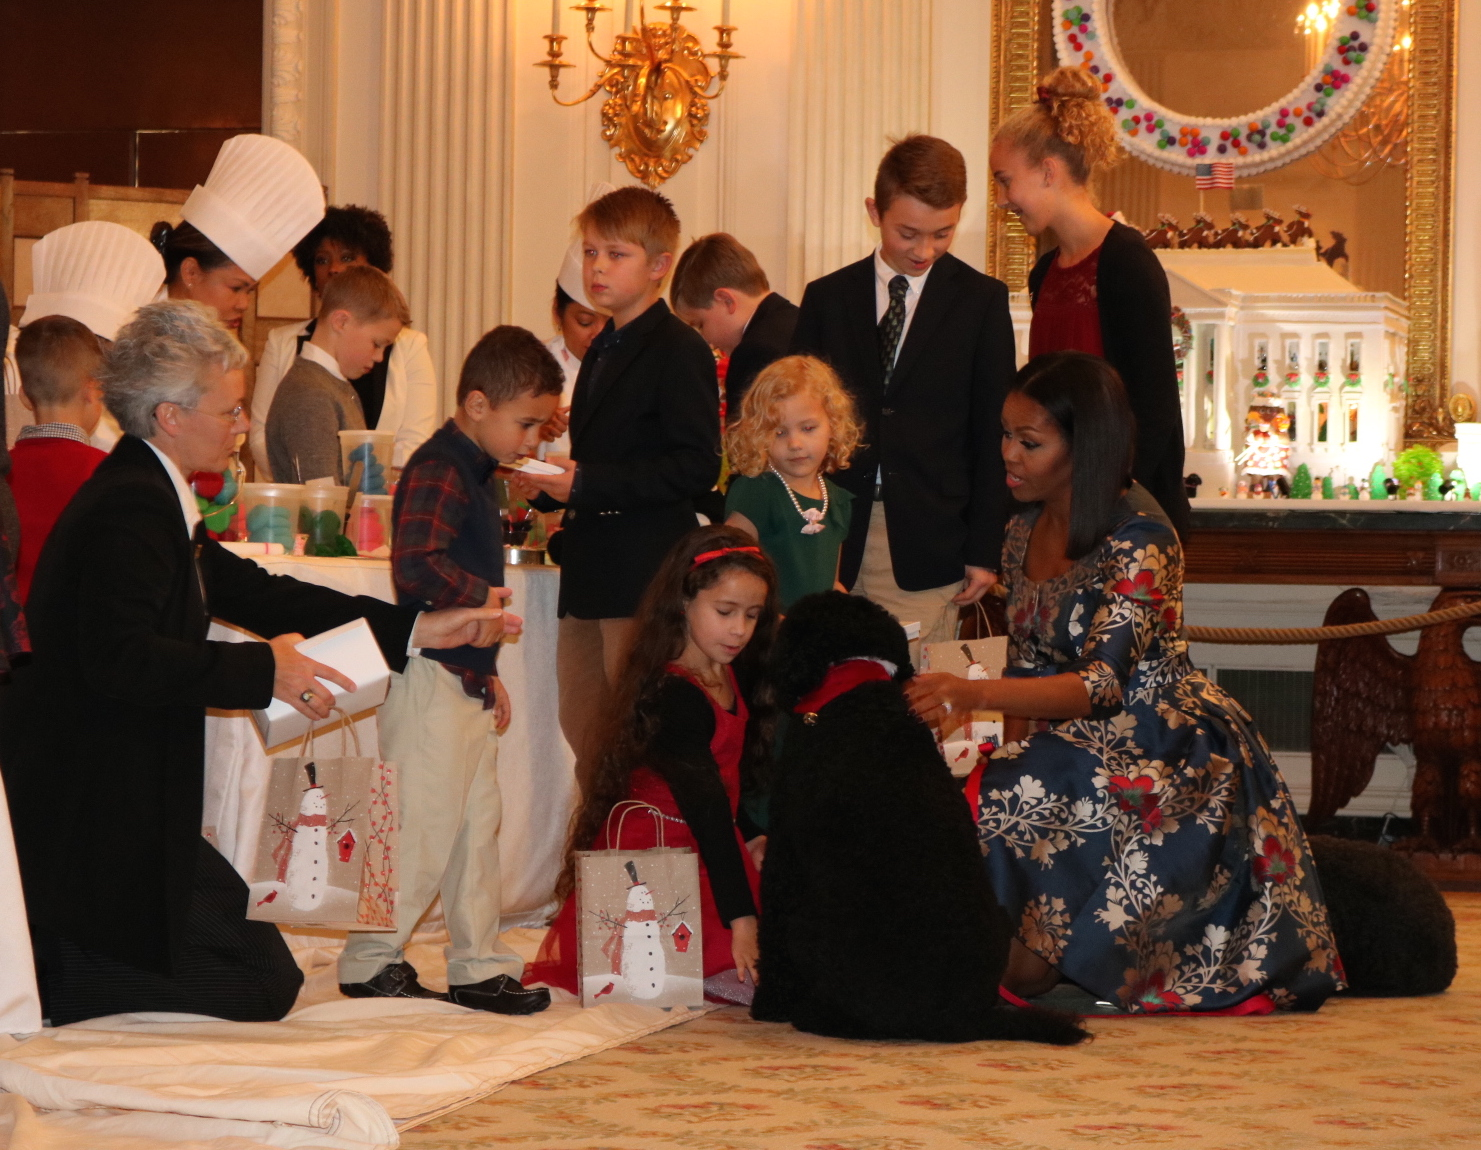 First Lady Michelle Obama meets with kids at the 2016 White House Christmas. Photo by Sydney MaHan.